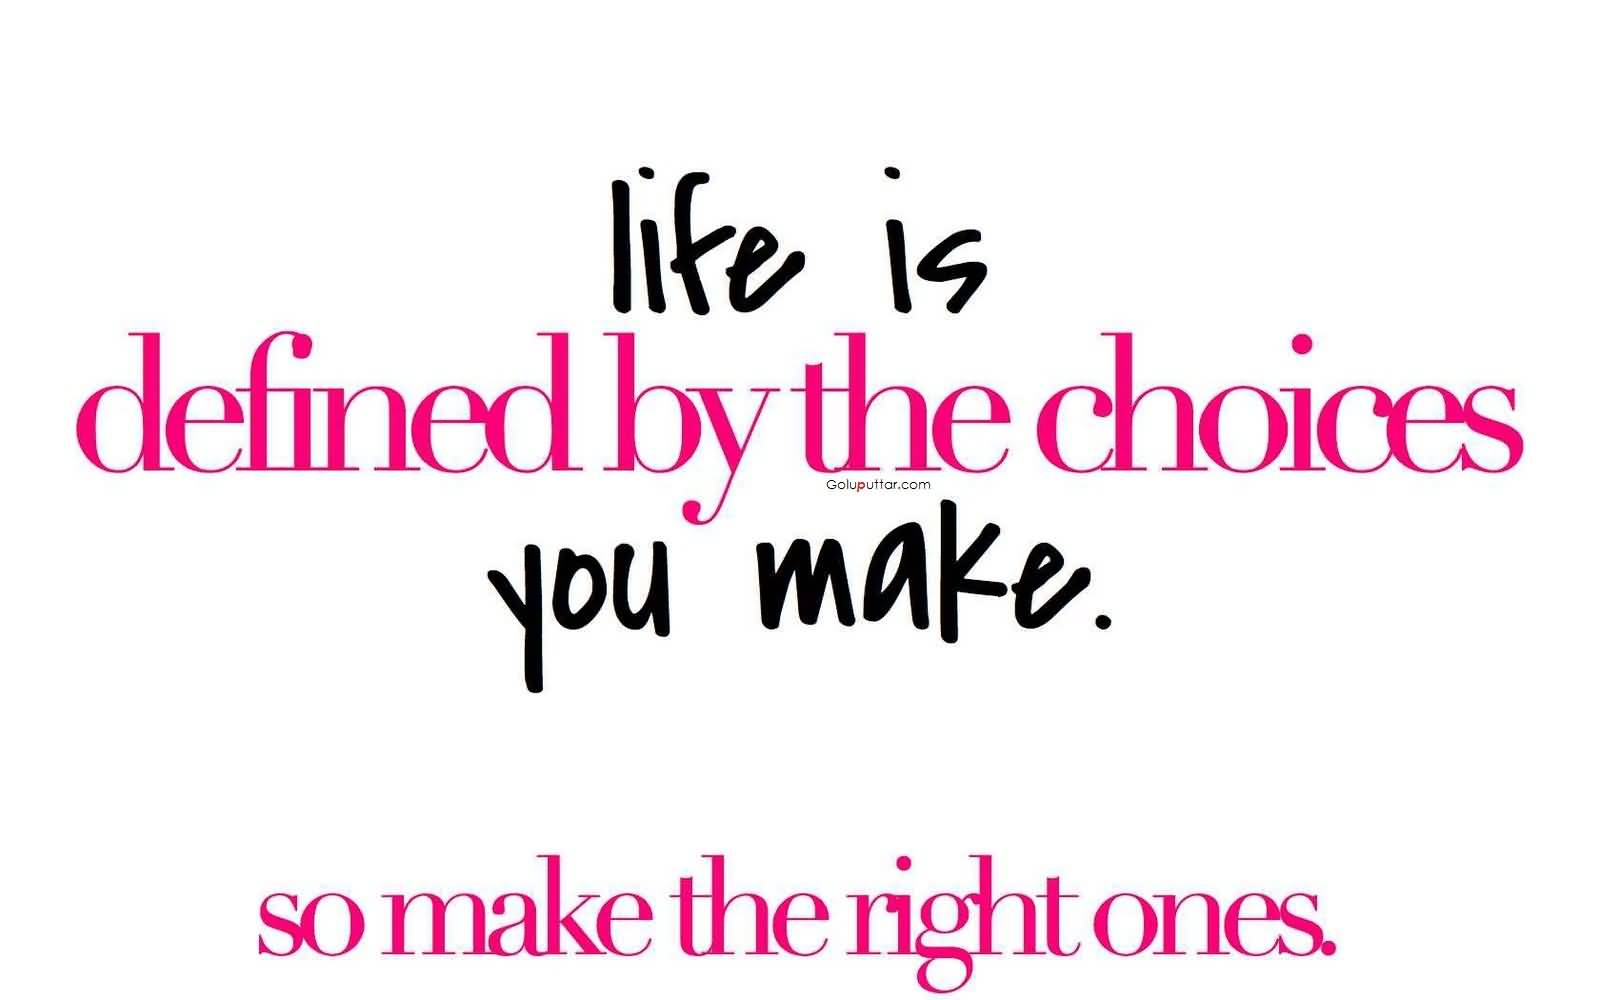 Jumping To Conclusions Quotes The Choice Quotes Stunning Nicholas Sparks Archives She Scribes